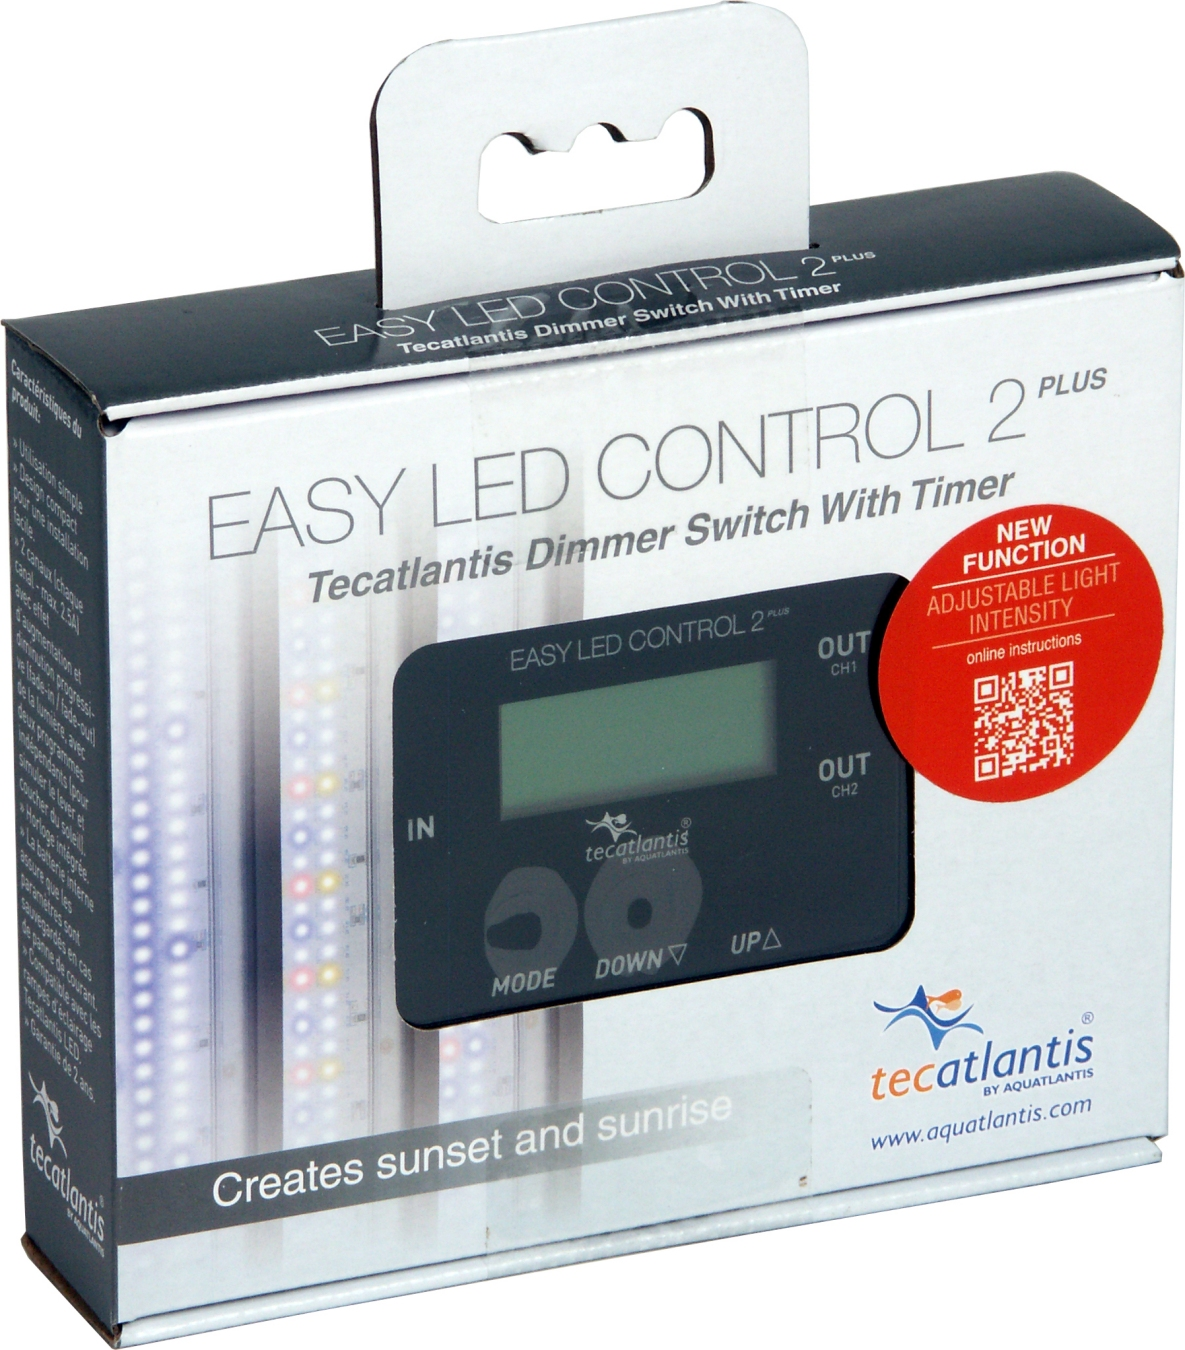 Shop Aquatlantis Easy LED Control 2 Plus